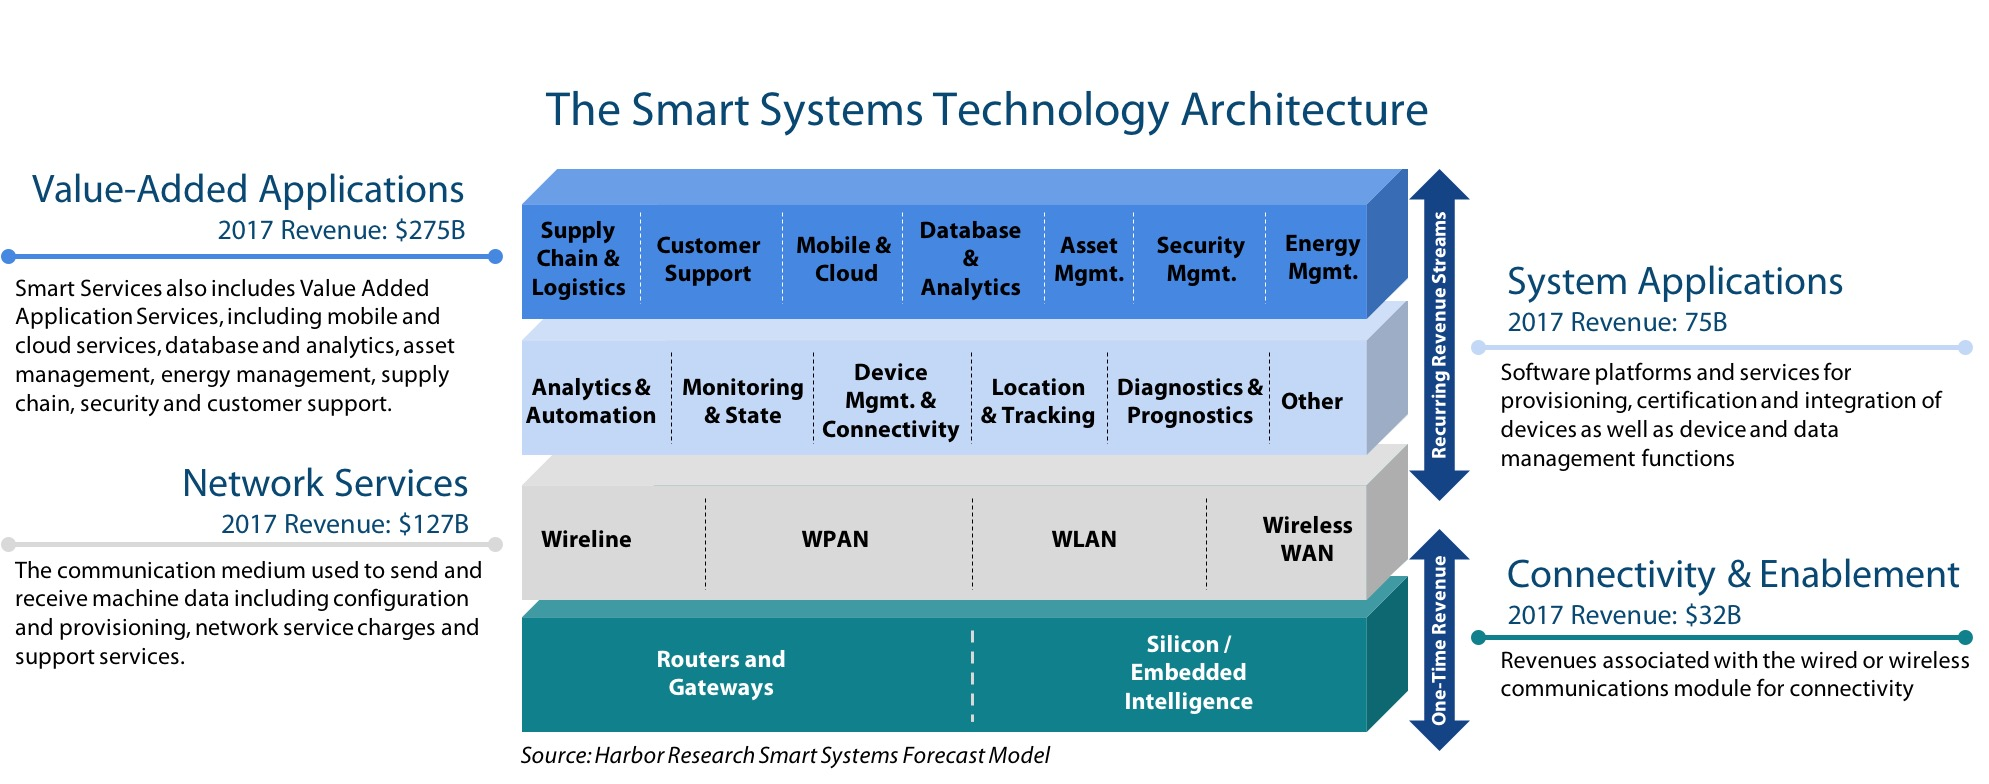 Smart Systems Technology Architecture